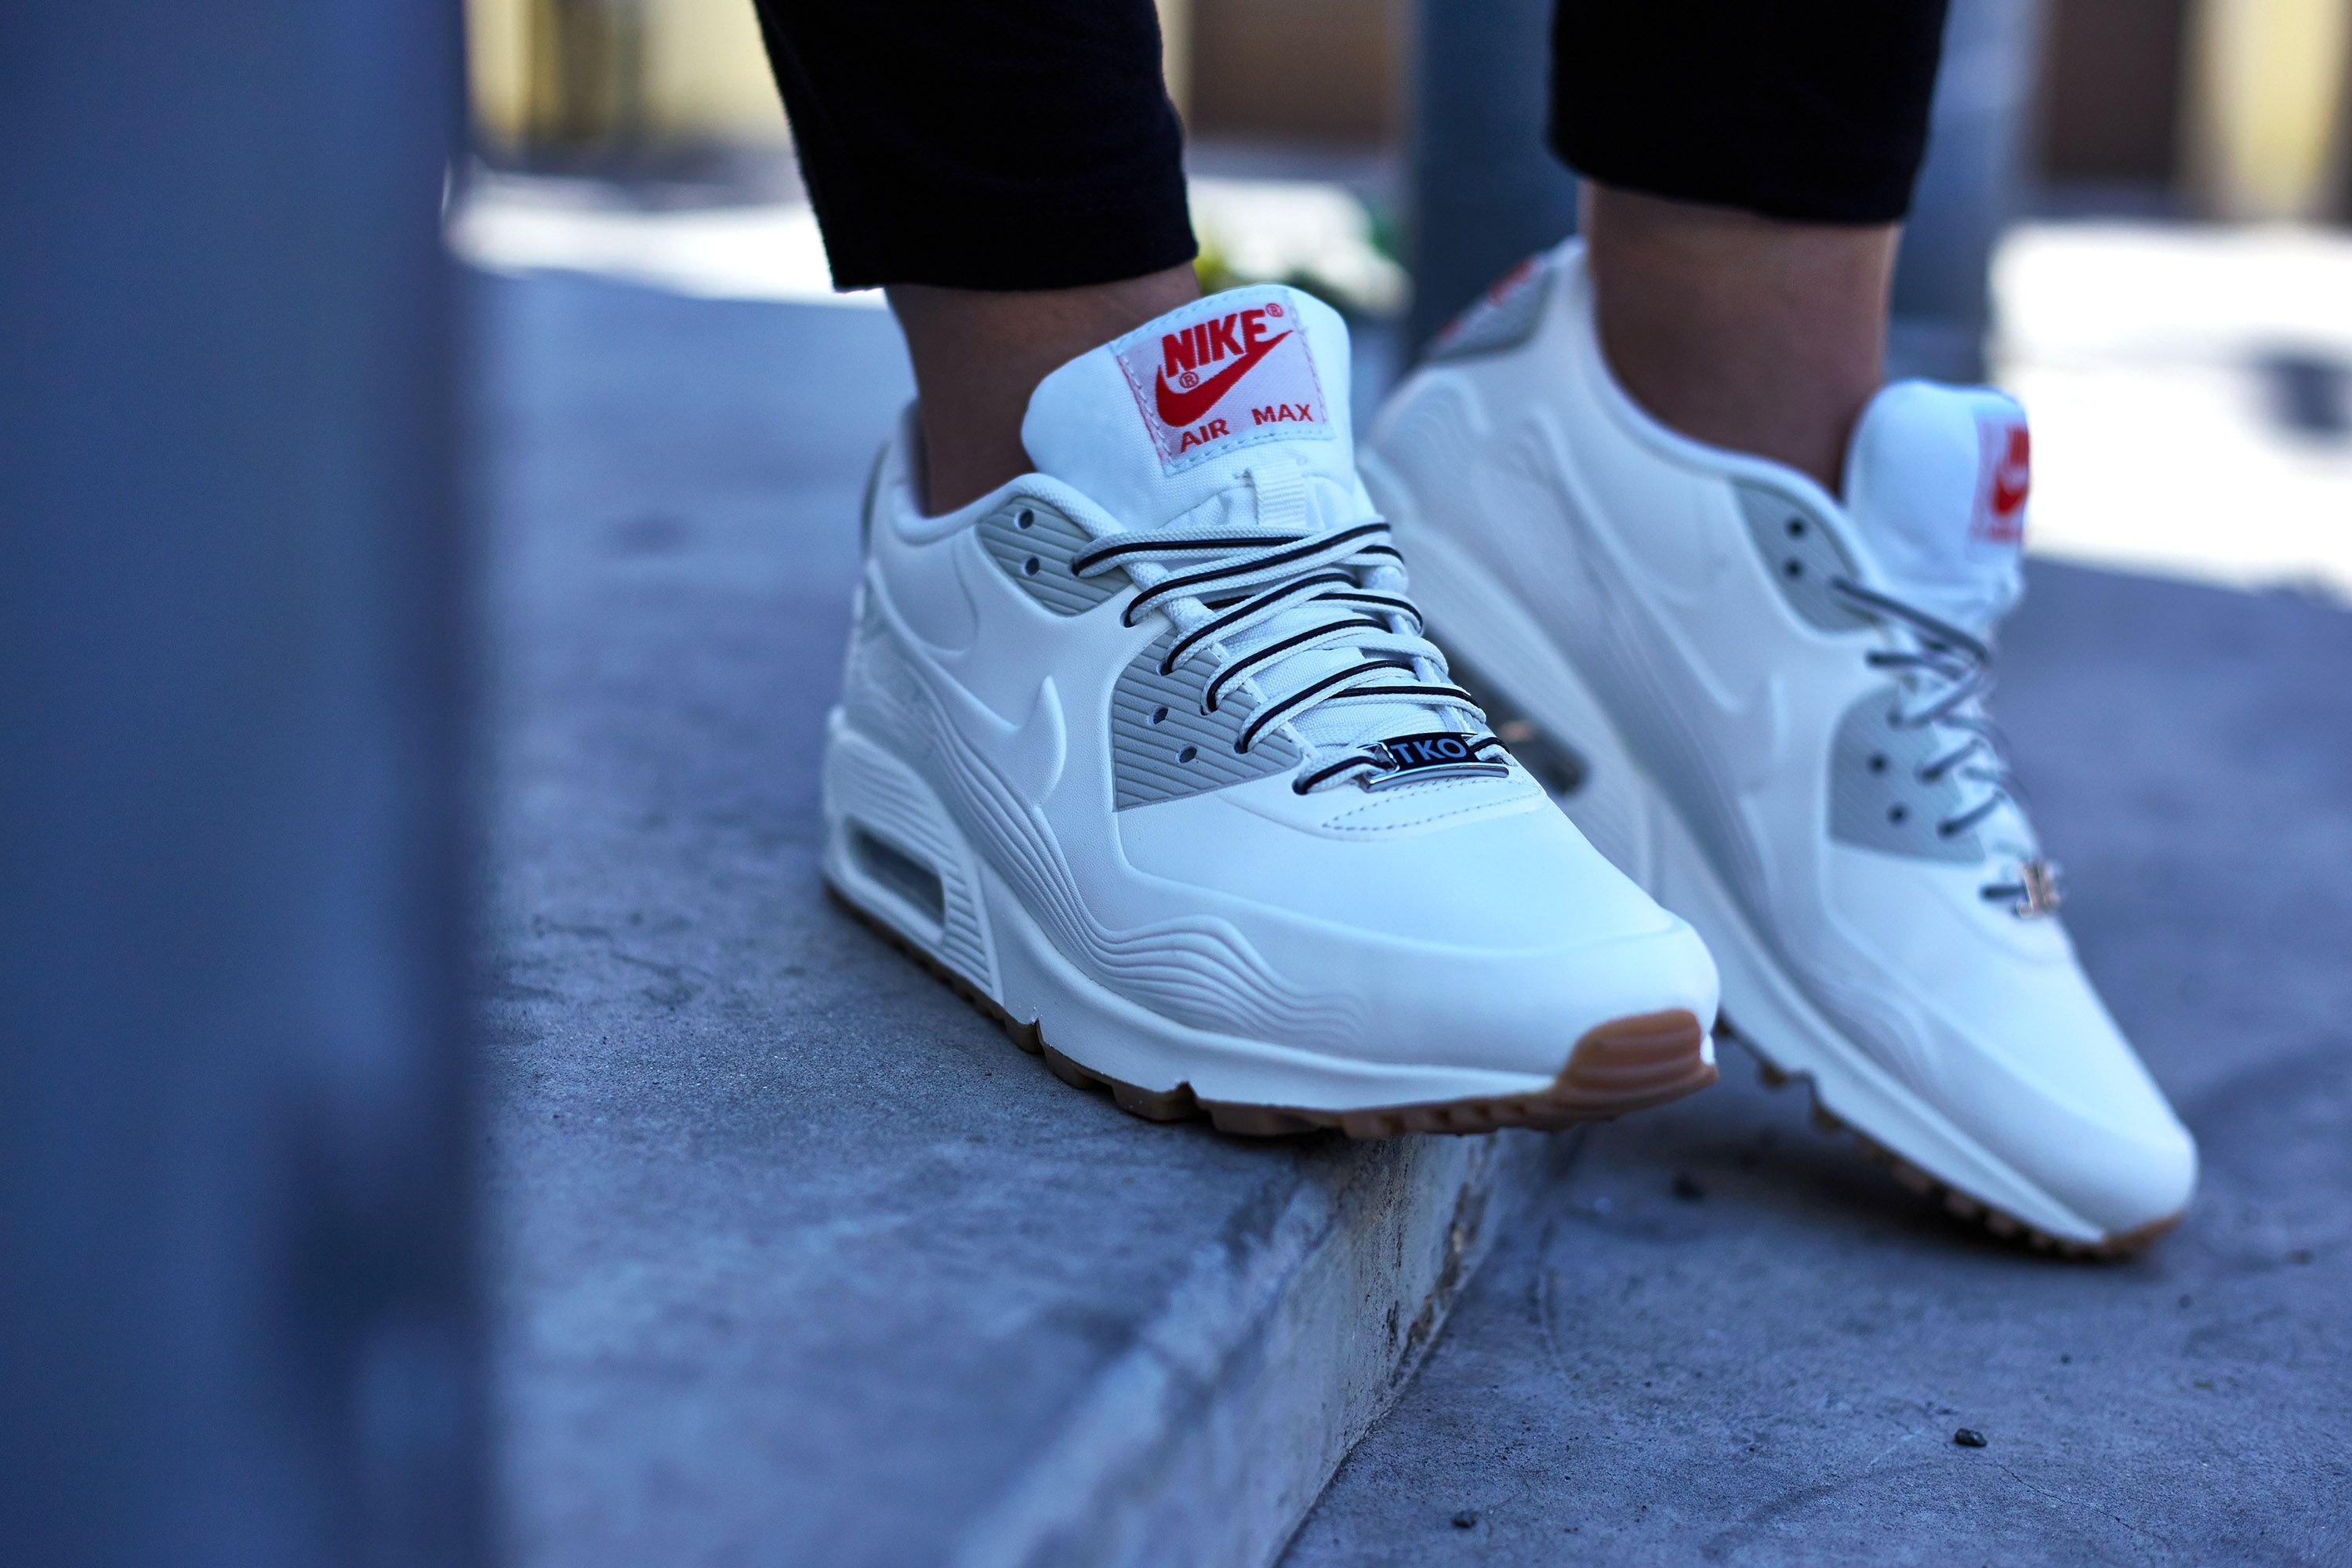 nike air max 90 hombre blancas bridal & boutique